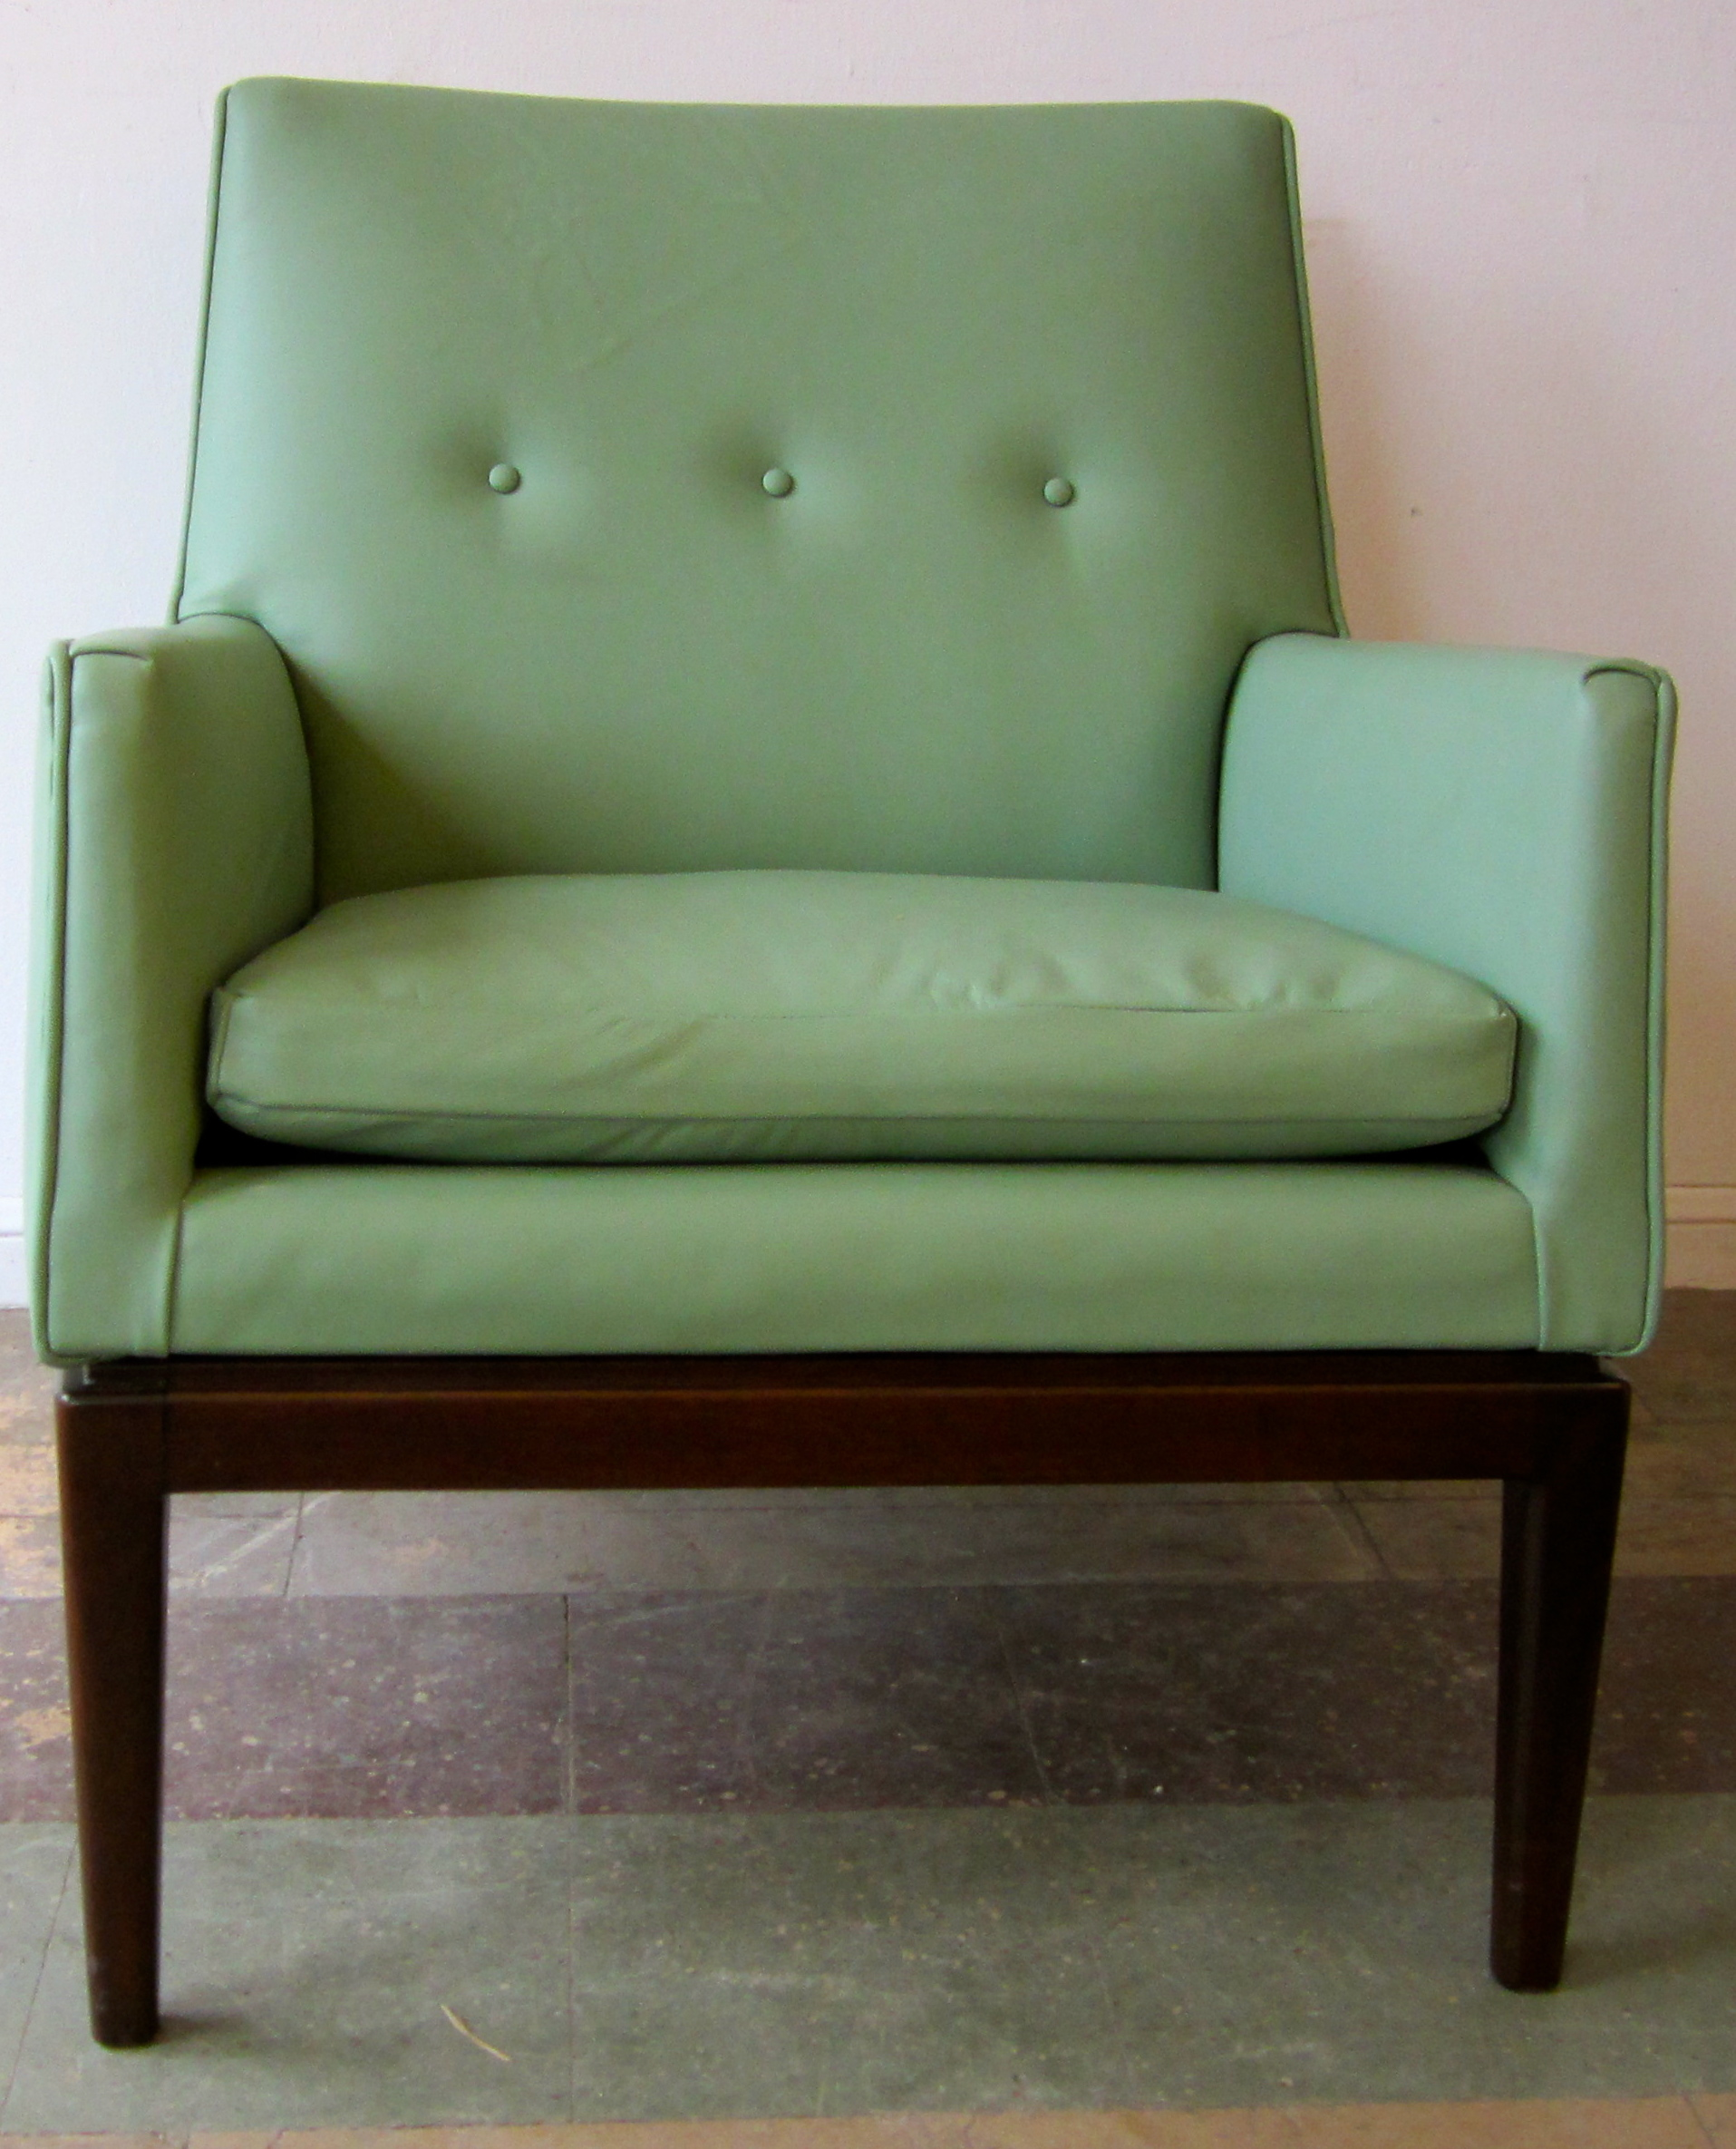 jade jens risom leather lounge chair reeves antiques mid century